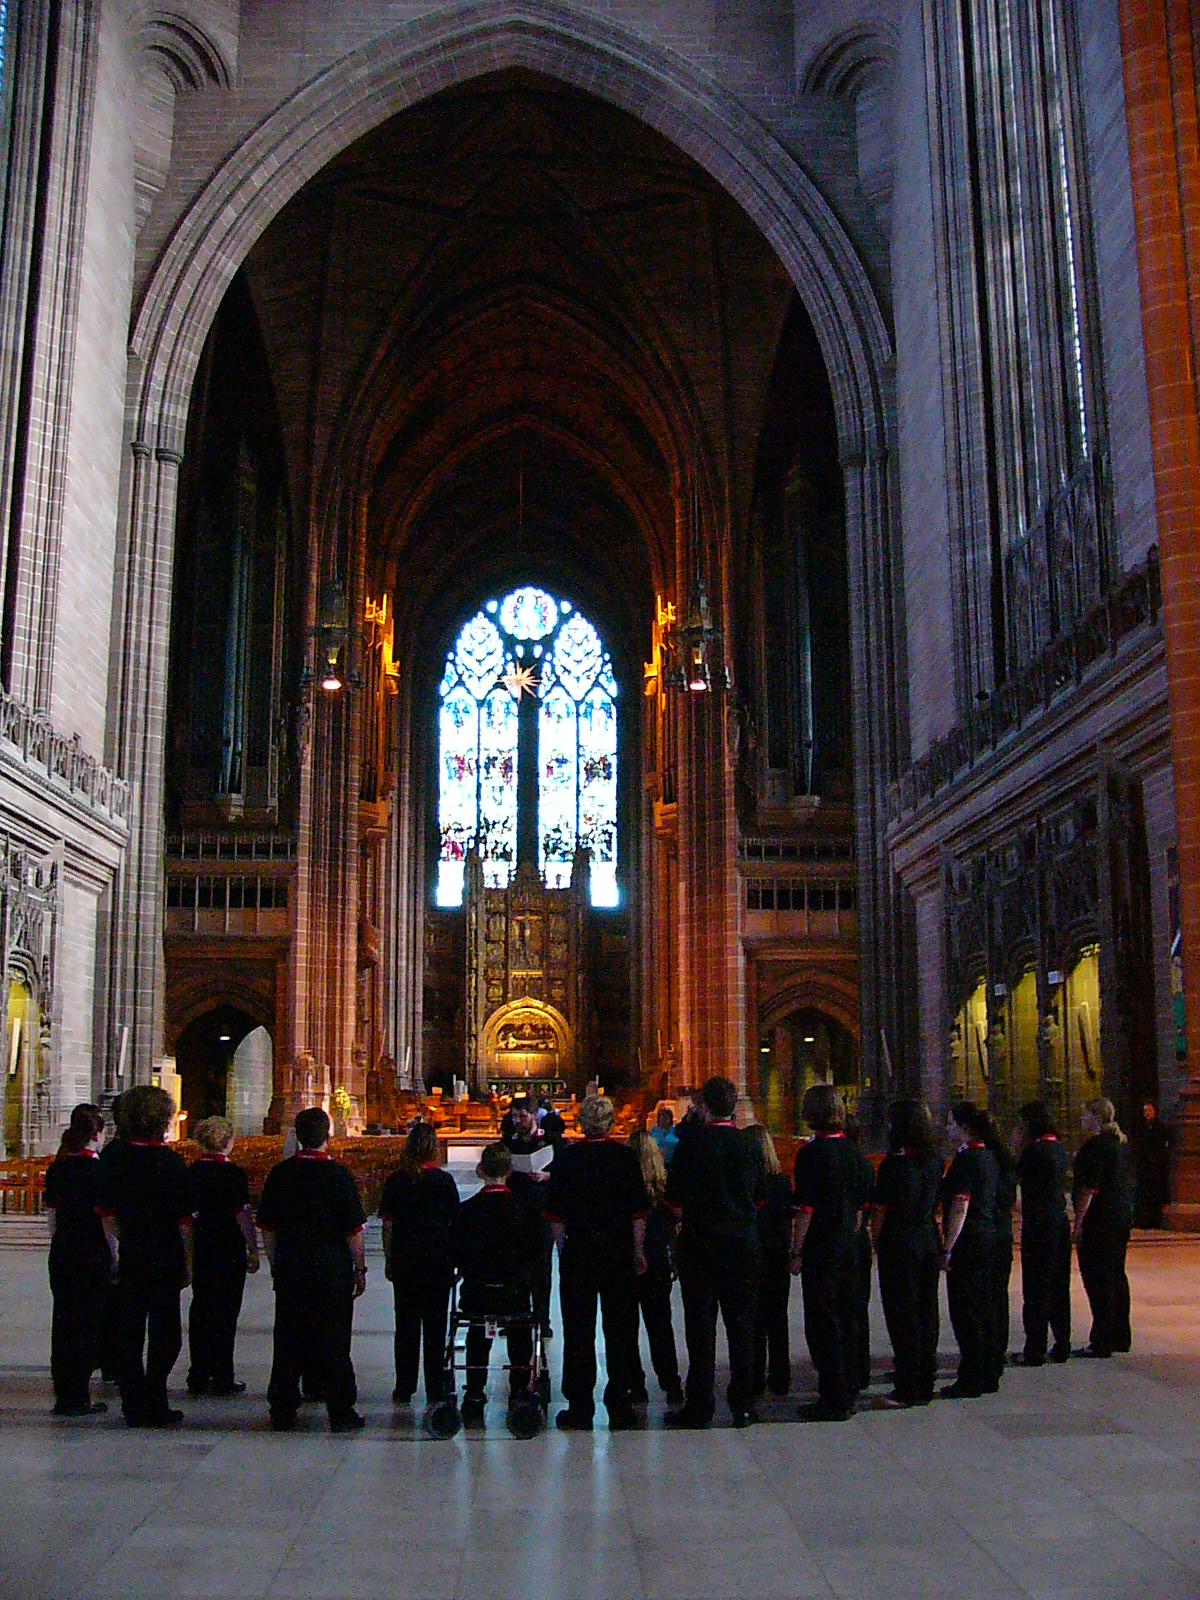 Singing in Liverpool Cathedral. It is the second longest and fifth largest cathedral in the world! It has an 8 and a half second reverberation time! We are standing under a bridge from one side of the cathedral to the other!